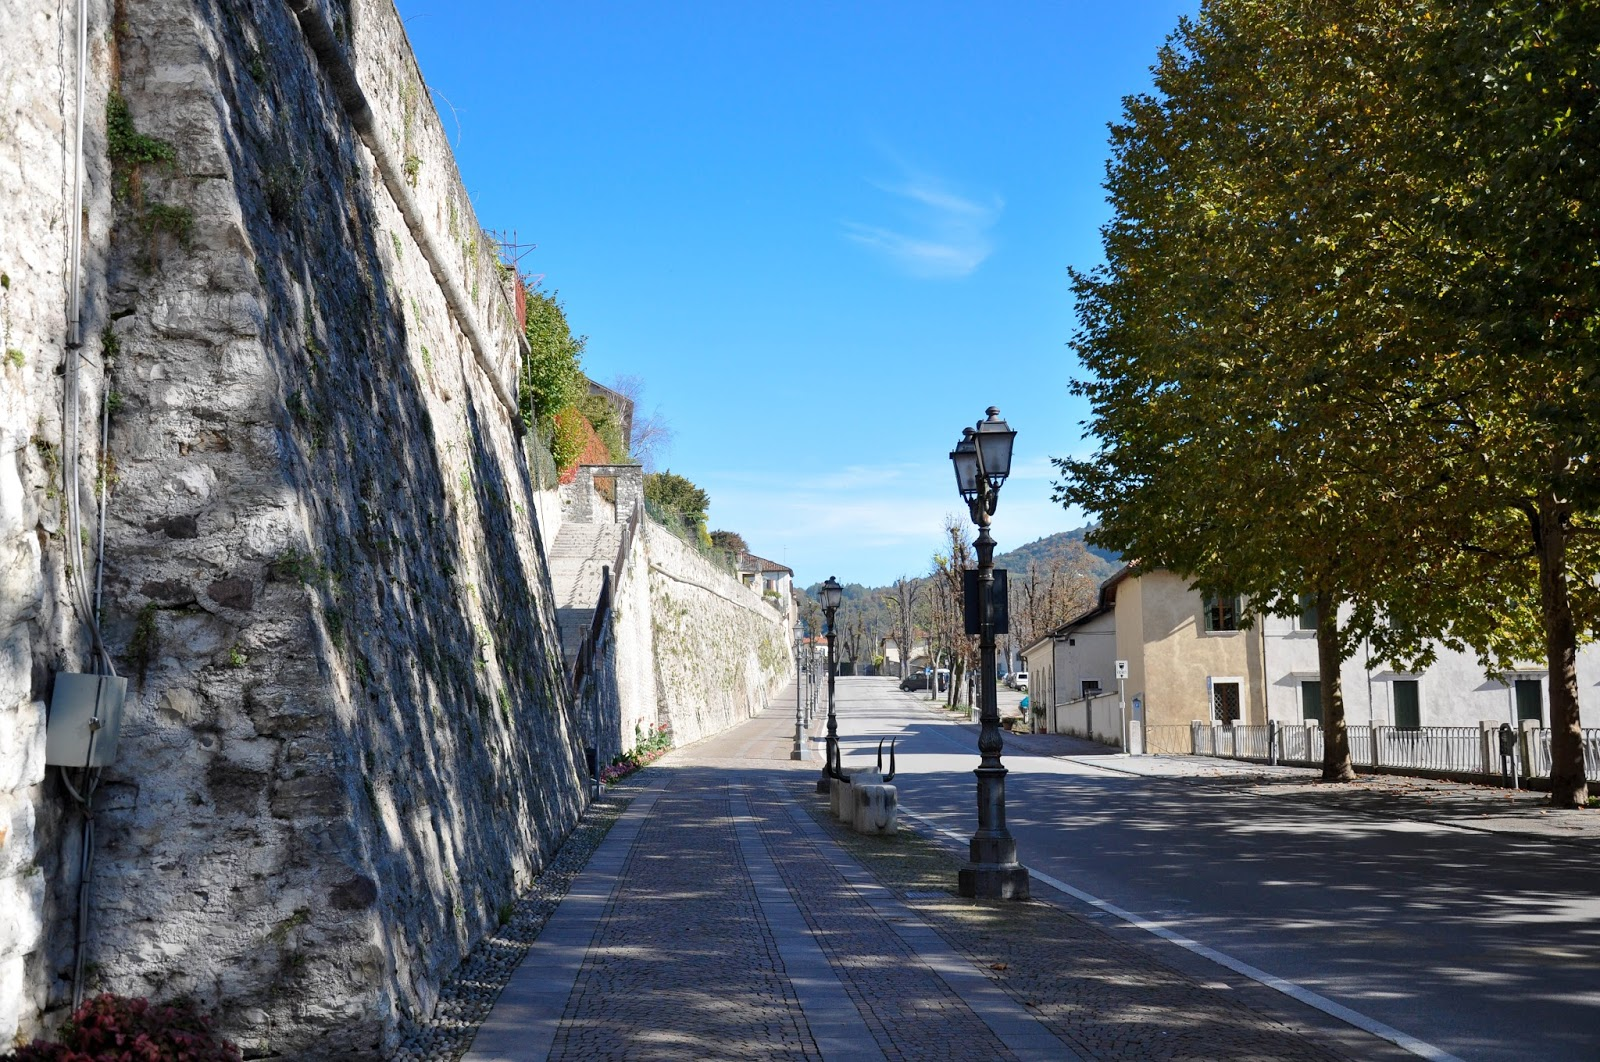 The street along the ramparts, Feltre, Veneto, Italy